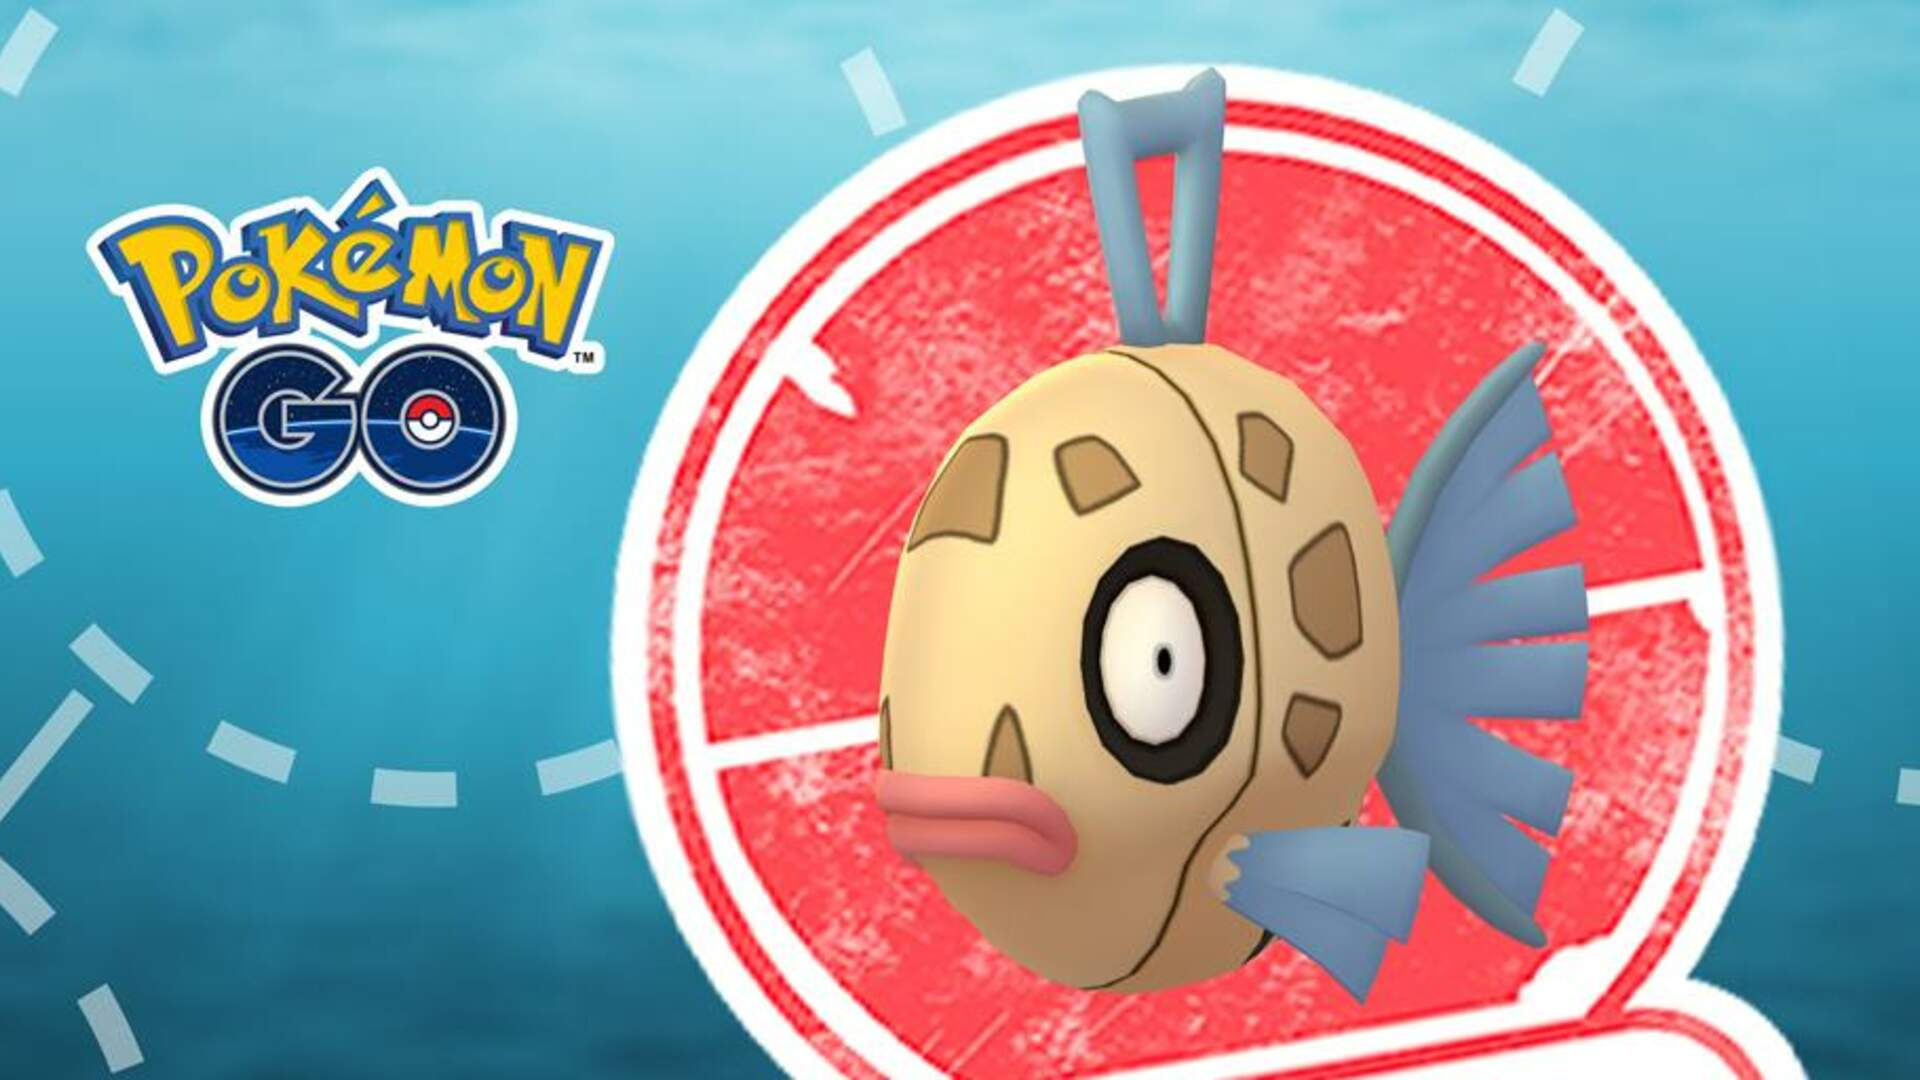 Pokemon Go Feebas Research Event Start Time, Date, Shiny Feebas